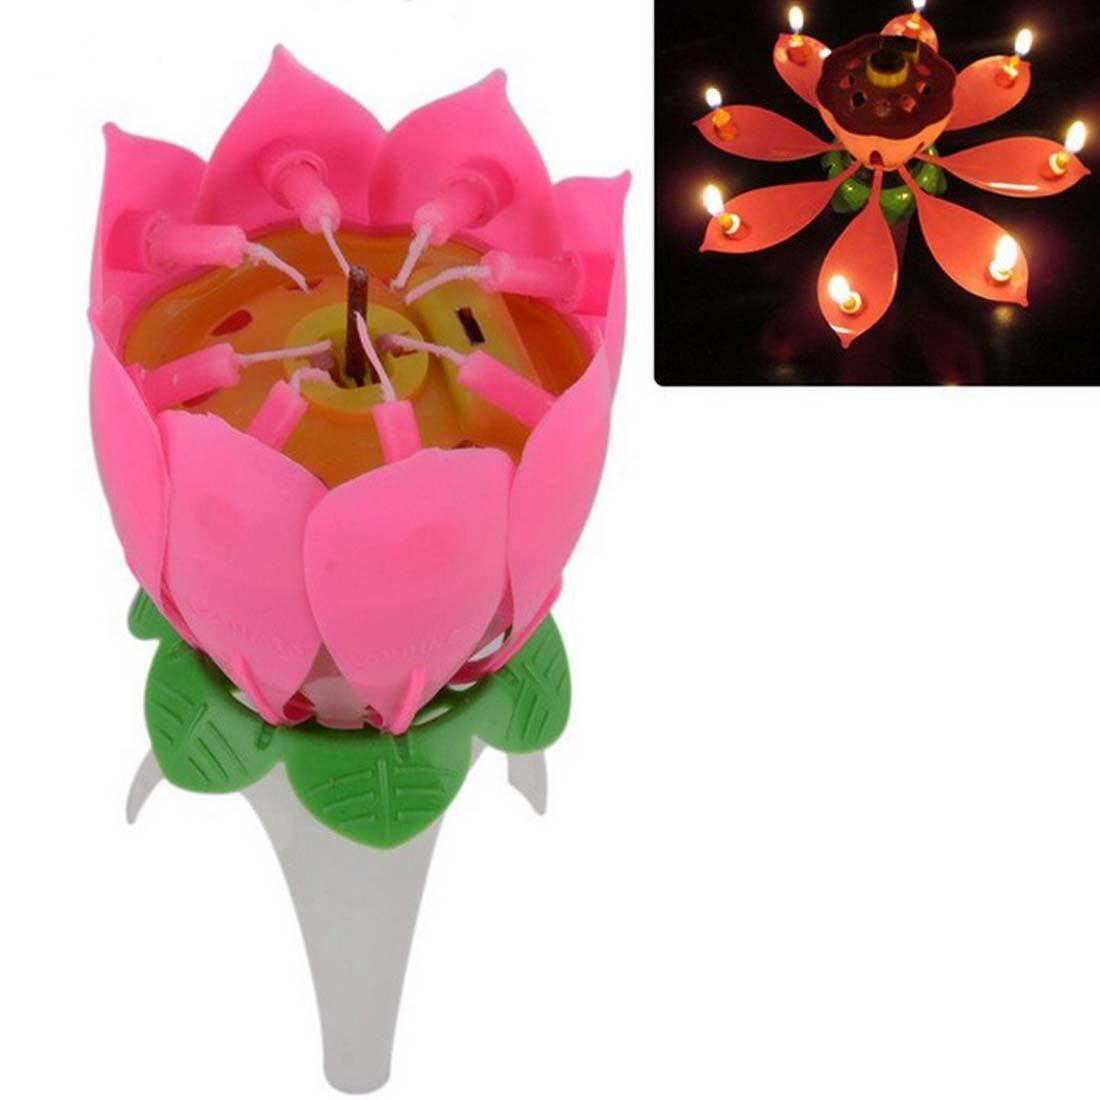 Best non smoky safty sparkling flower candle 8 wicks musical lotus best non smoky safty sparkling flower candle 8 wicks musical lotus birthday candle happy birthday music candles party supplies under 11458 dhgate izmirmasajfo